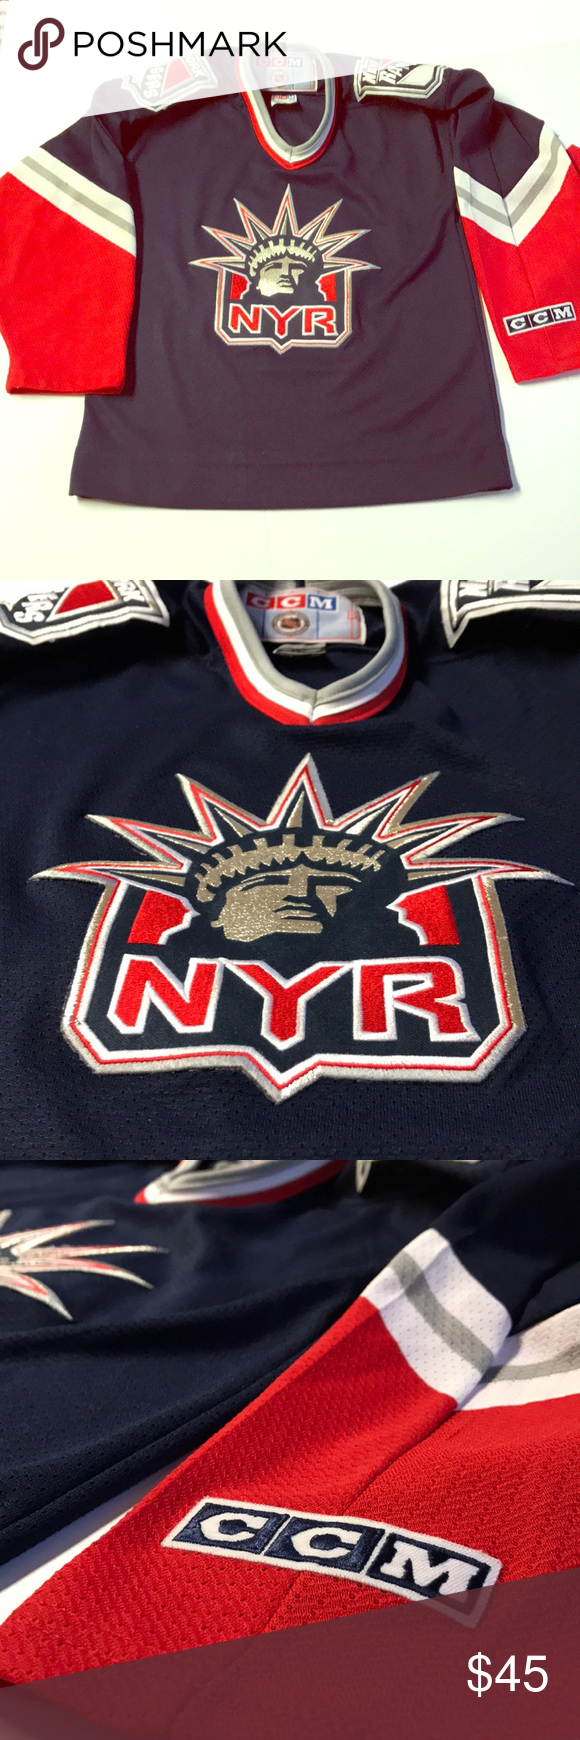 release date a8b79 53aef shop vintage new york rangers lady liberty ccm jersey b7e28 ...